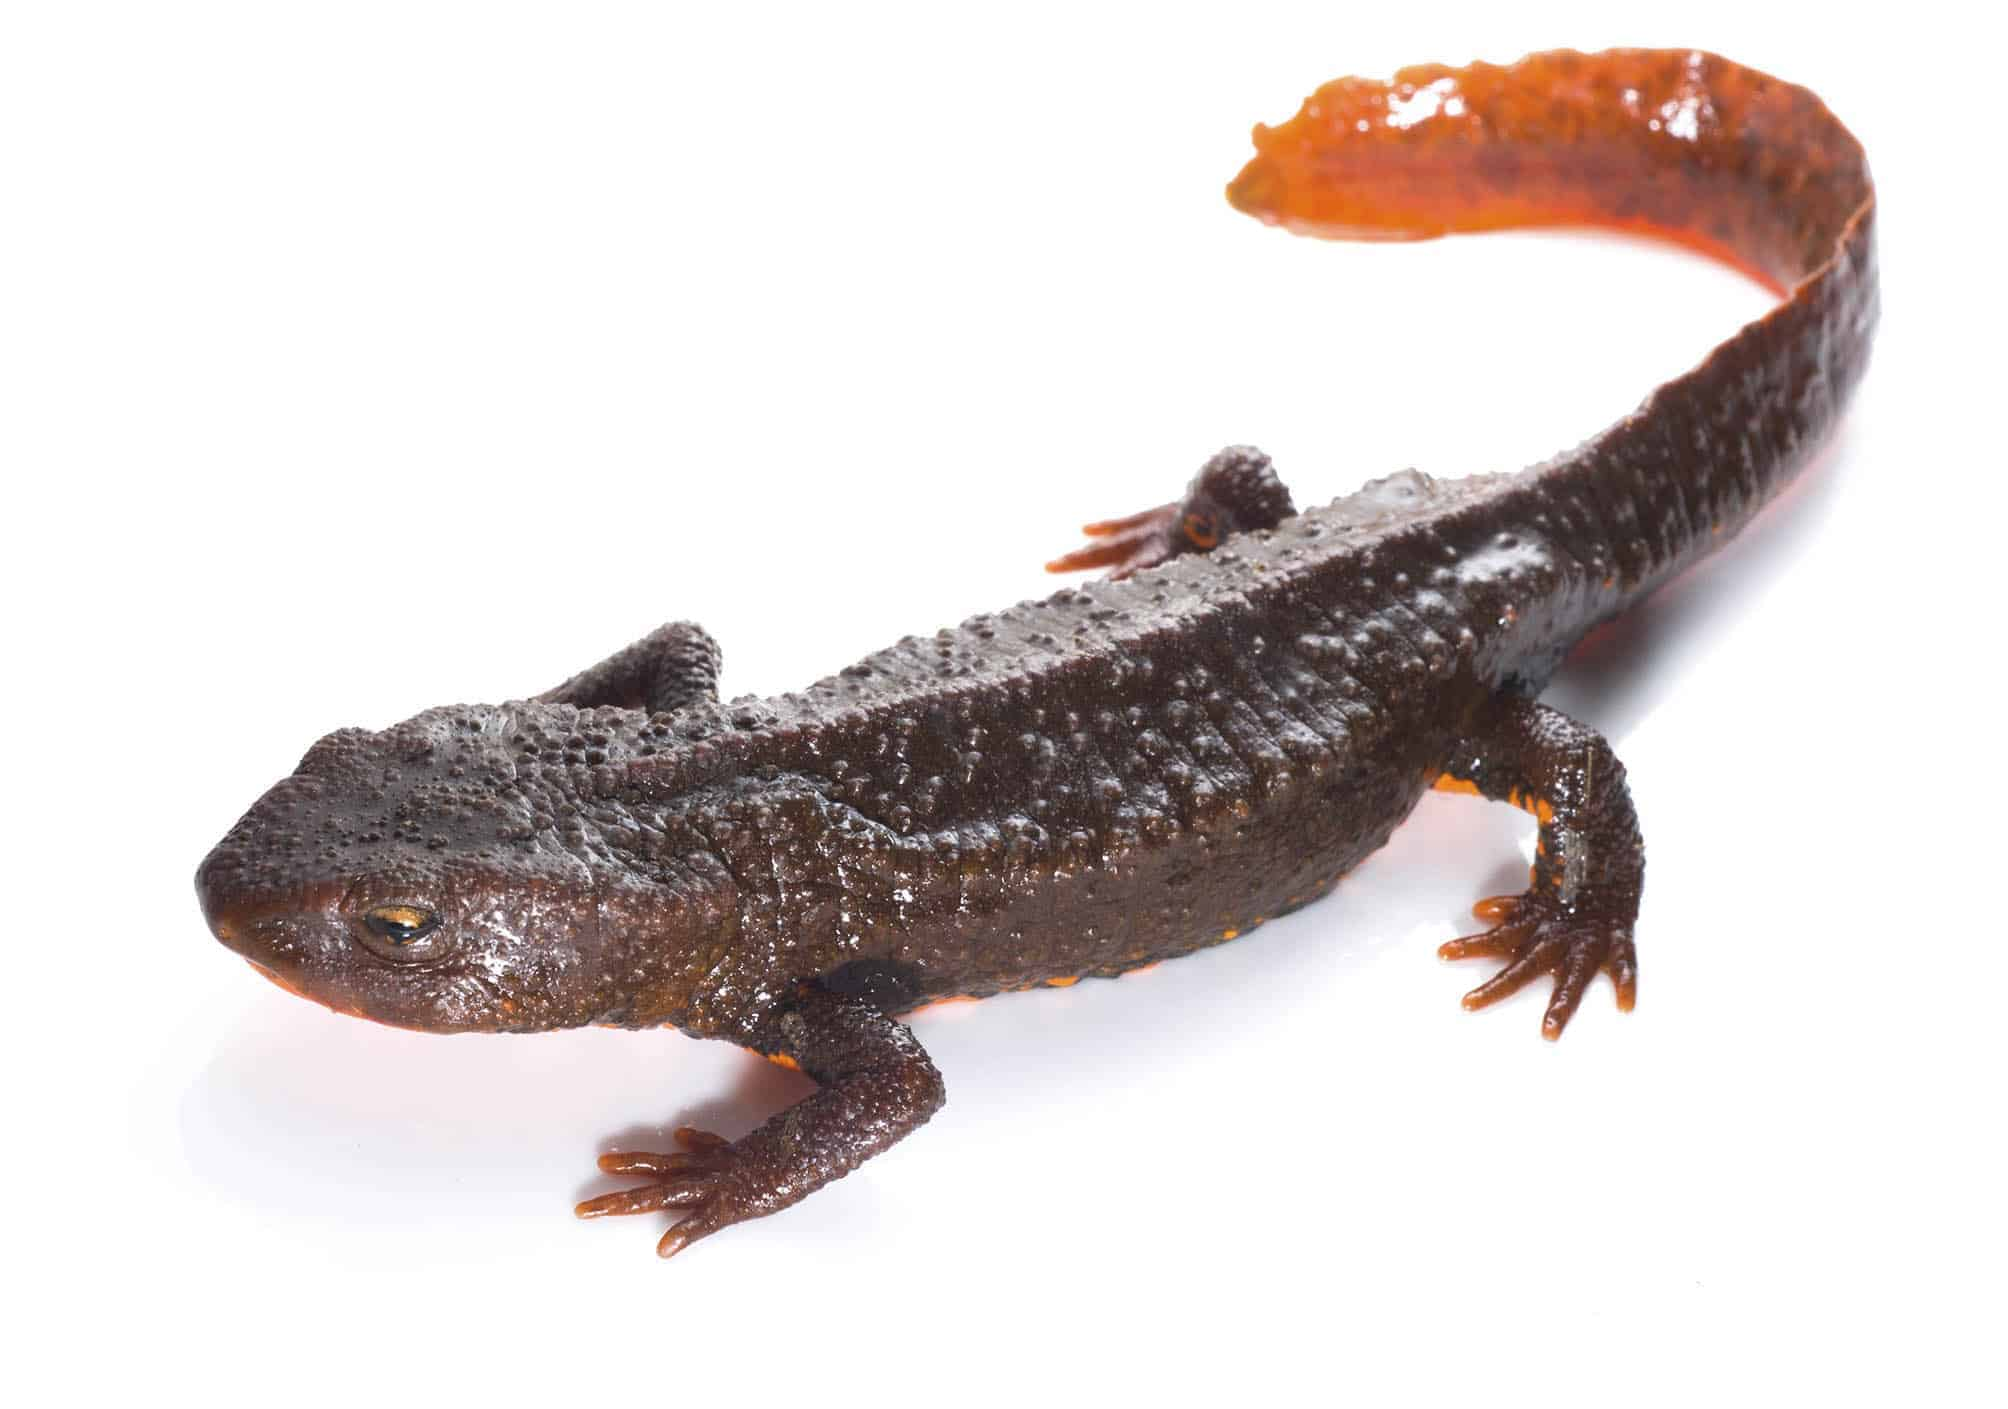 POLL: Should Southeast Asian newts be protected under CITES?